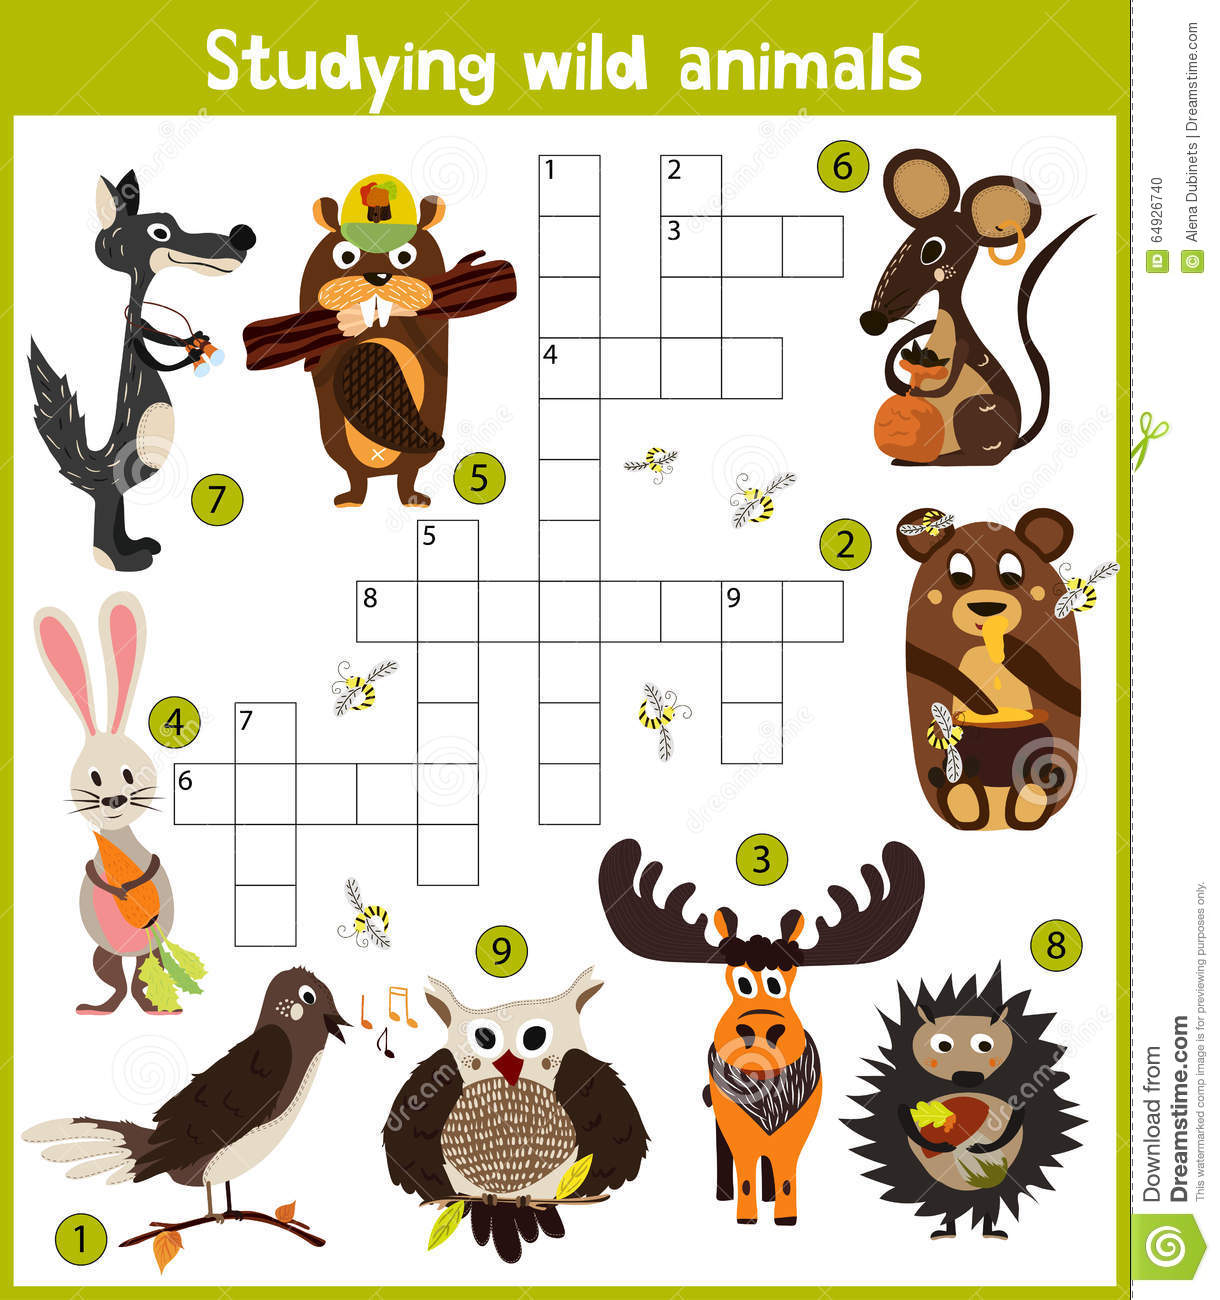 A Colorful Children S Cartoon Crossword Education Game